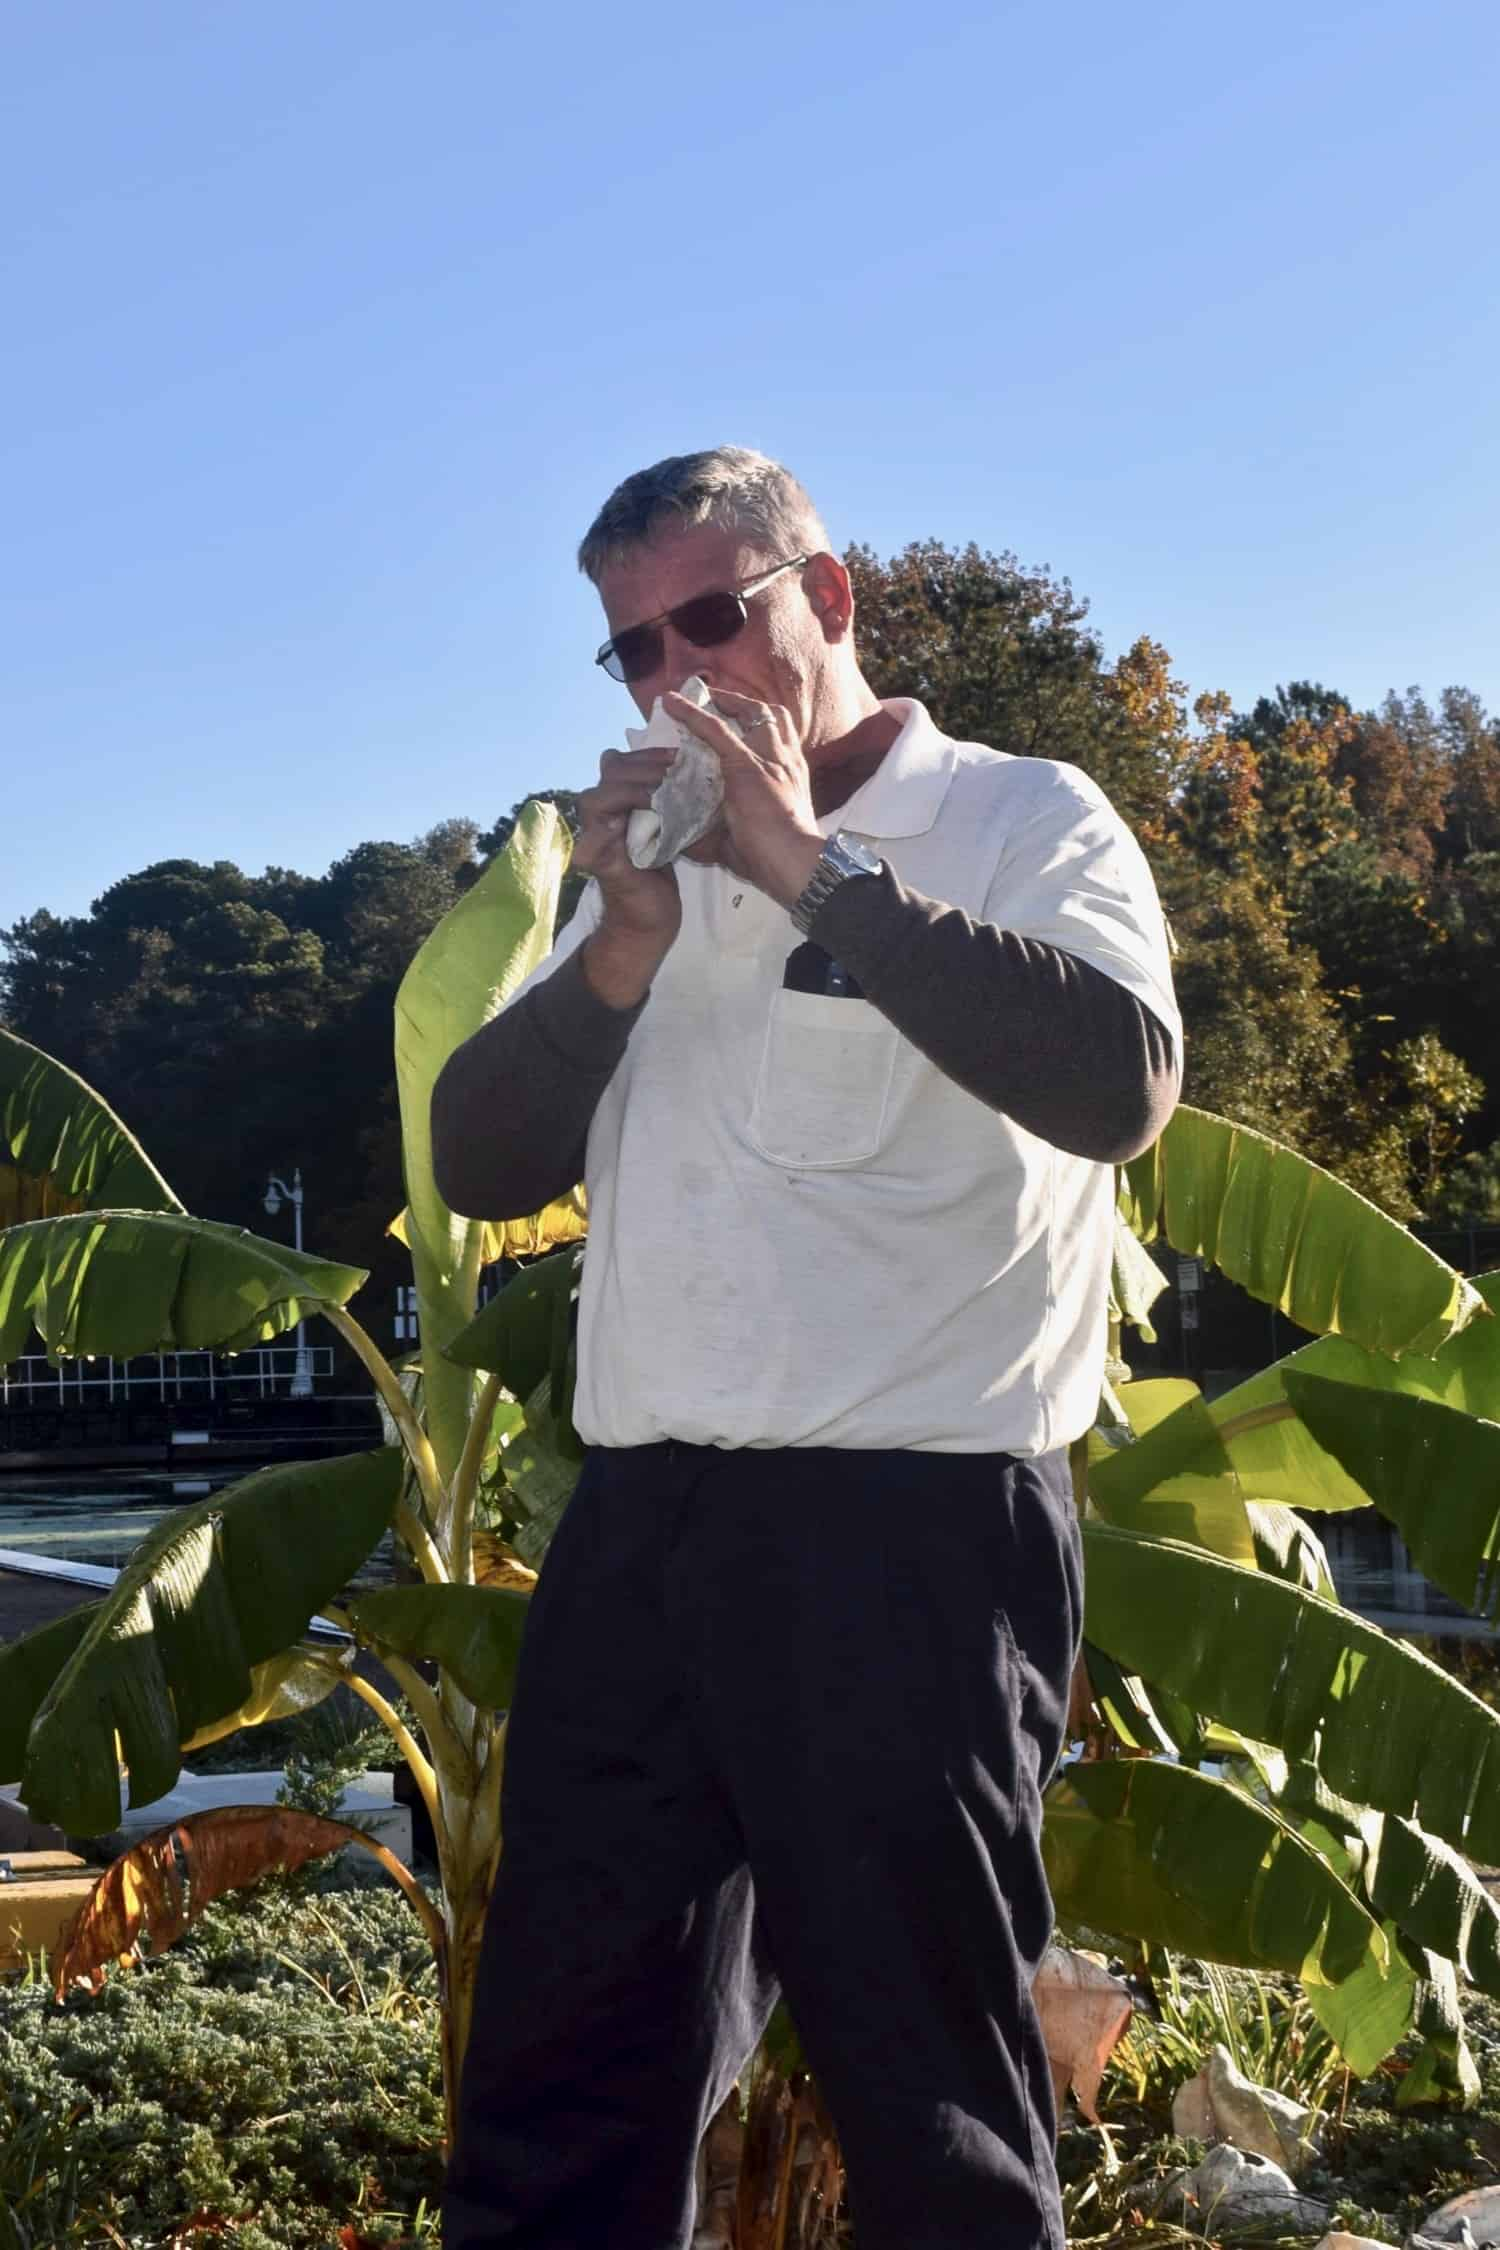 Dismal Swamp lock master, Robert, blowing a conch shell